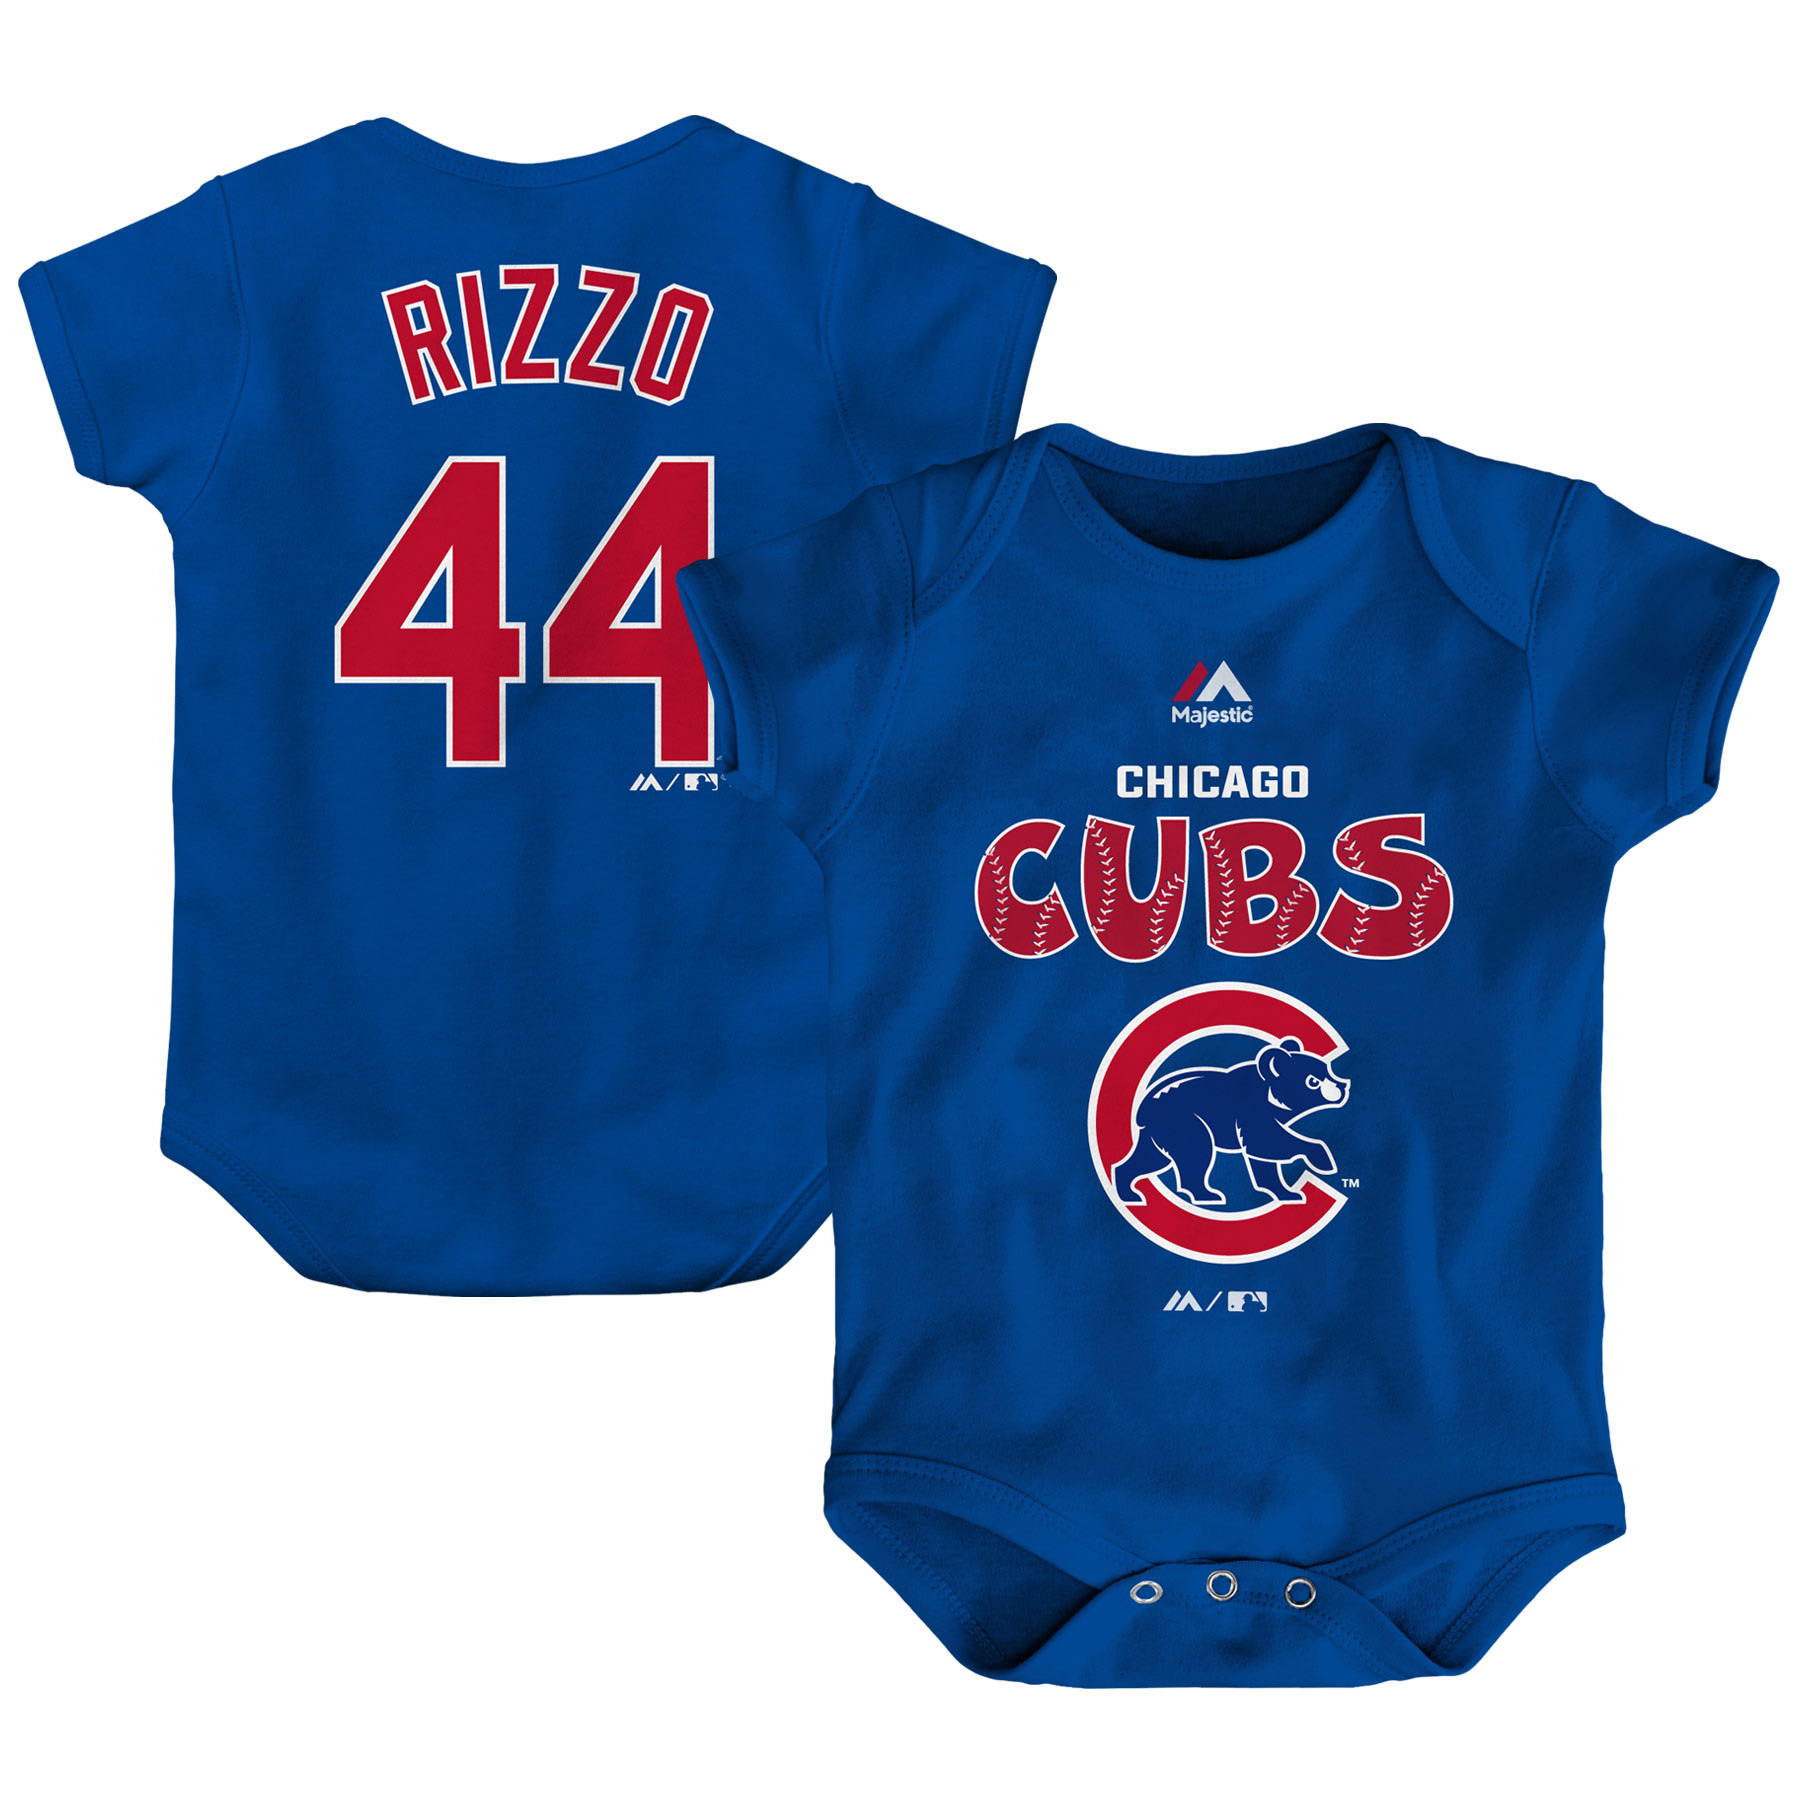 Anthony Rizzo Chicago Cubs Majestic Newborn & Infant Stitched Player Name & Number Bodysuit - Royal